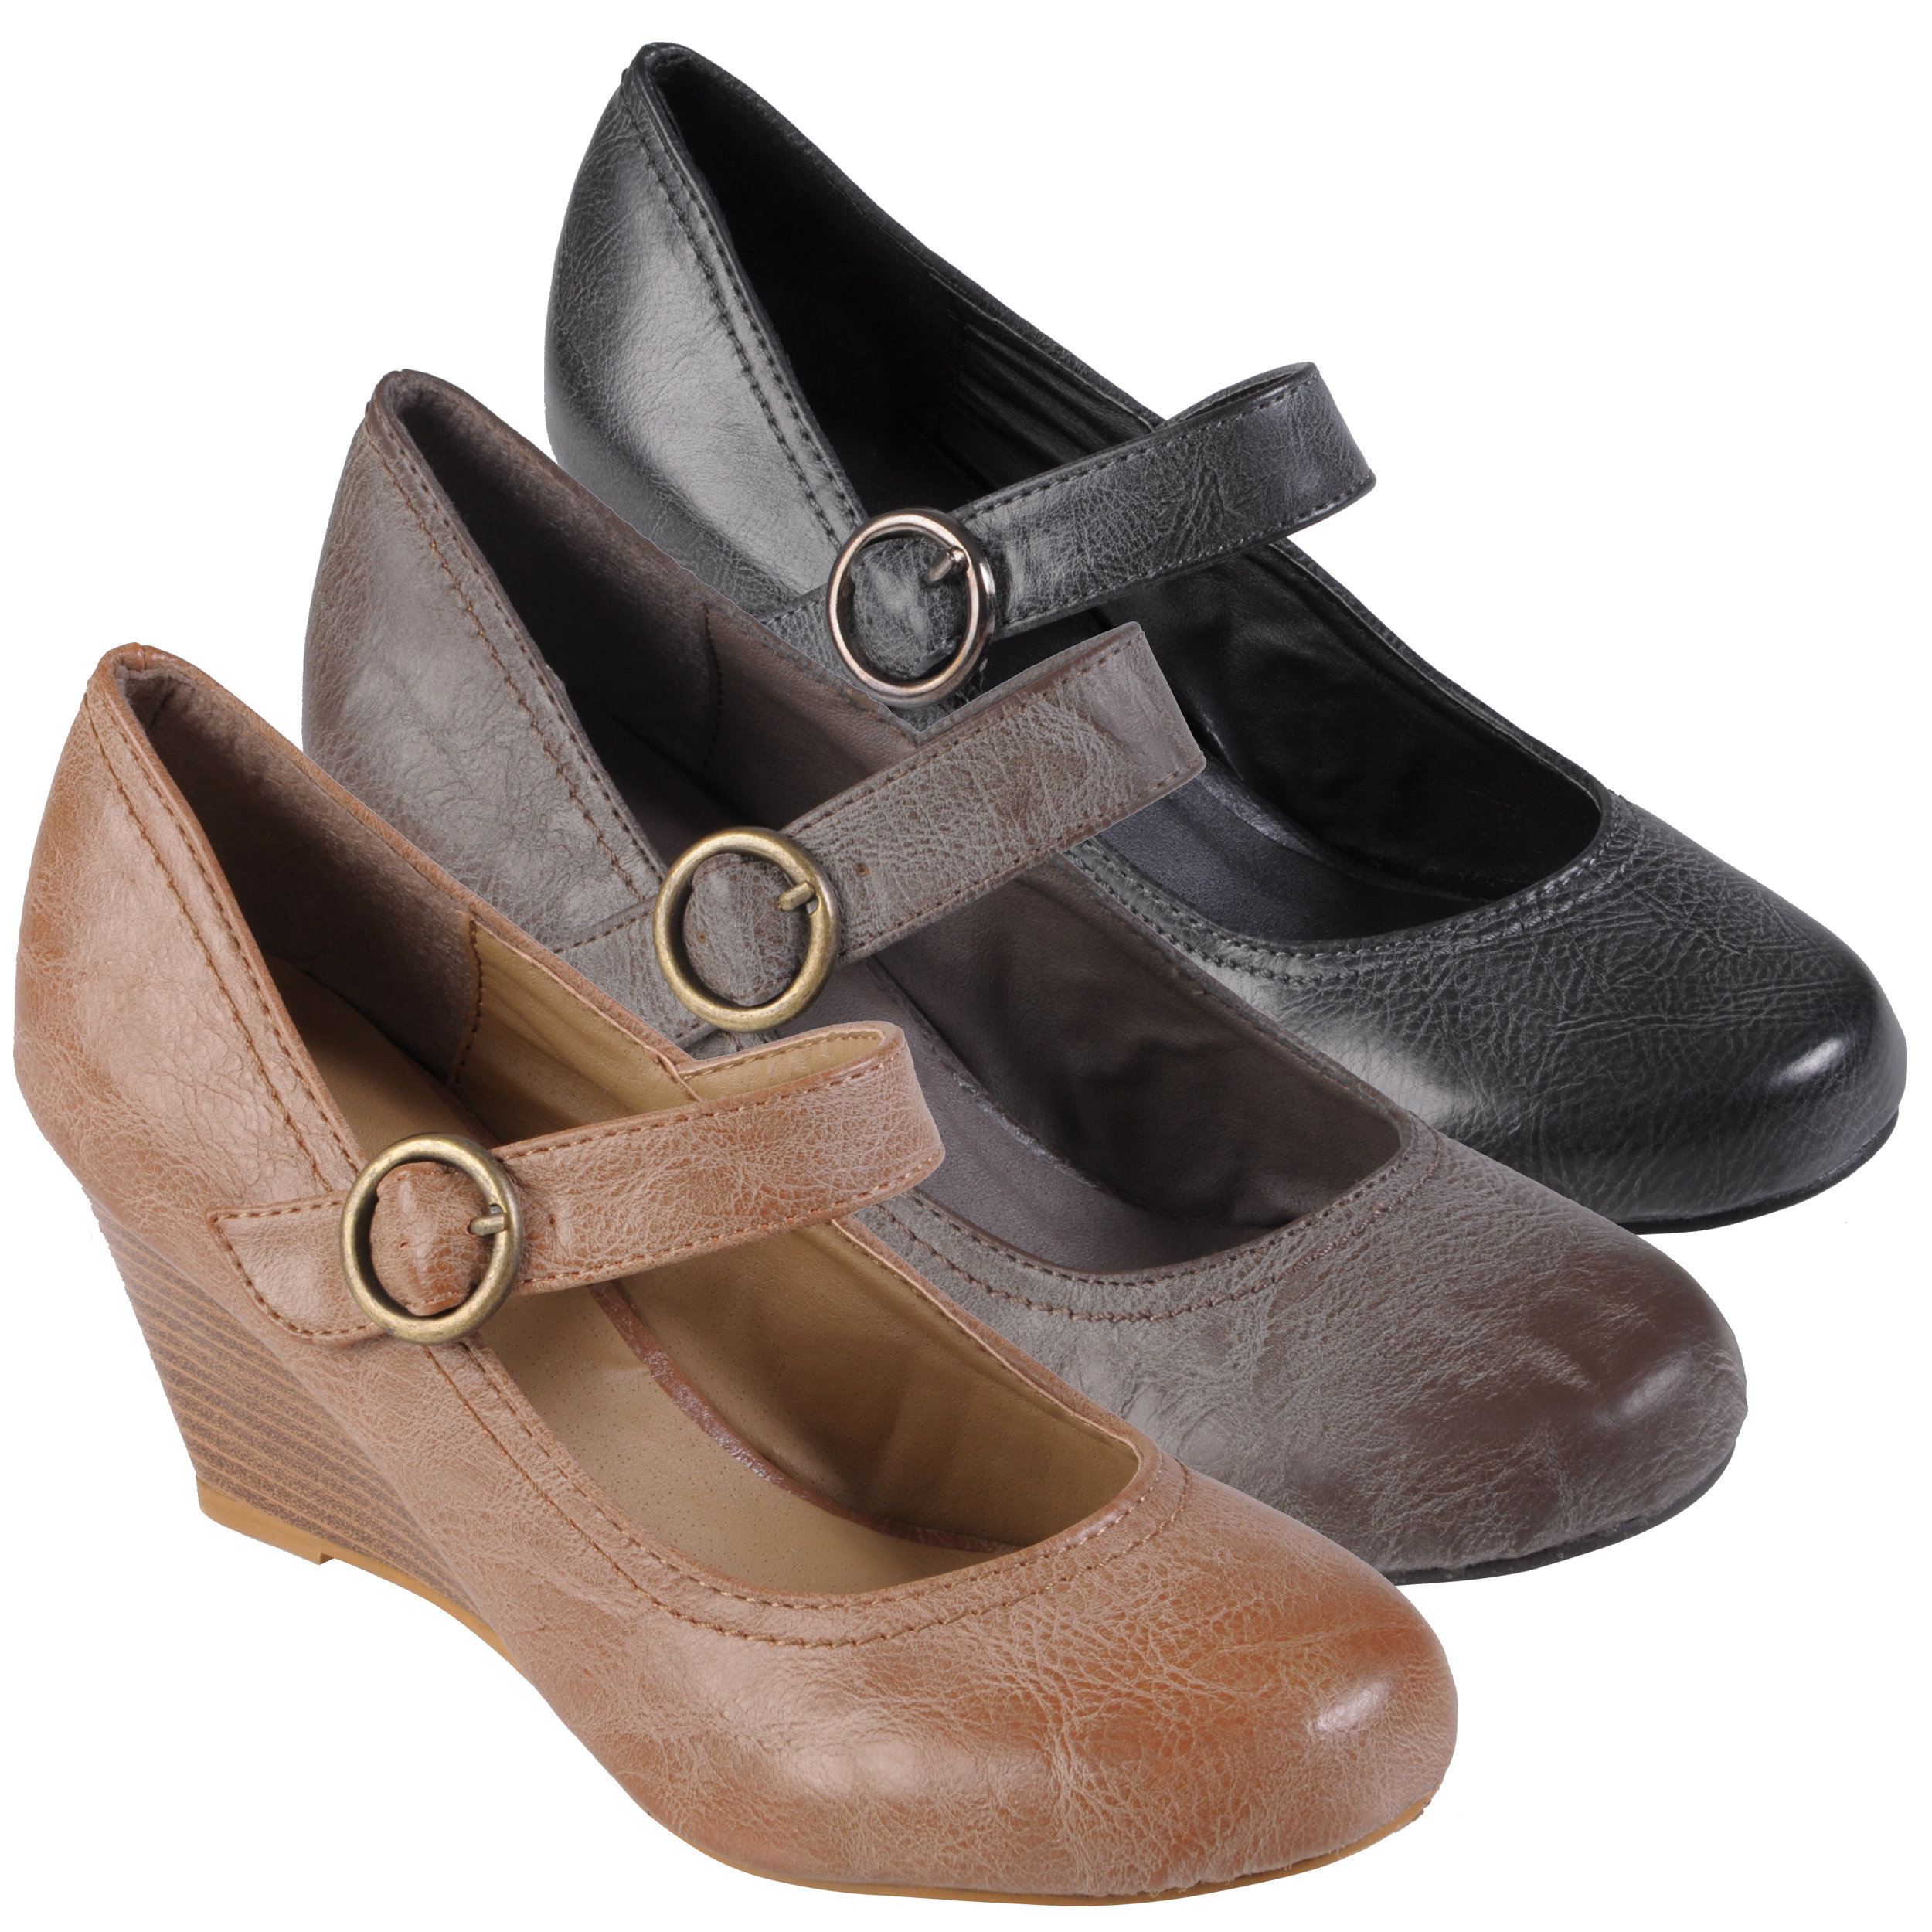 Journee Collection Women's 'Olson' Faux Leather Round Toe Mary Janes | Overstock.com